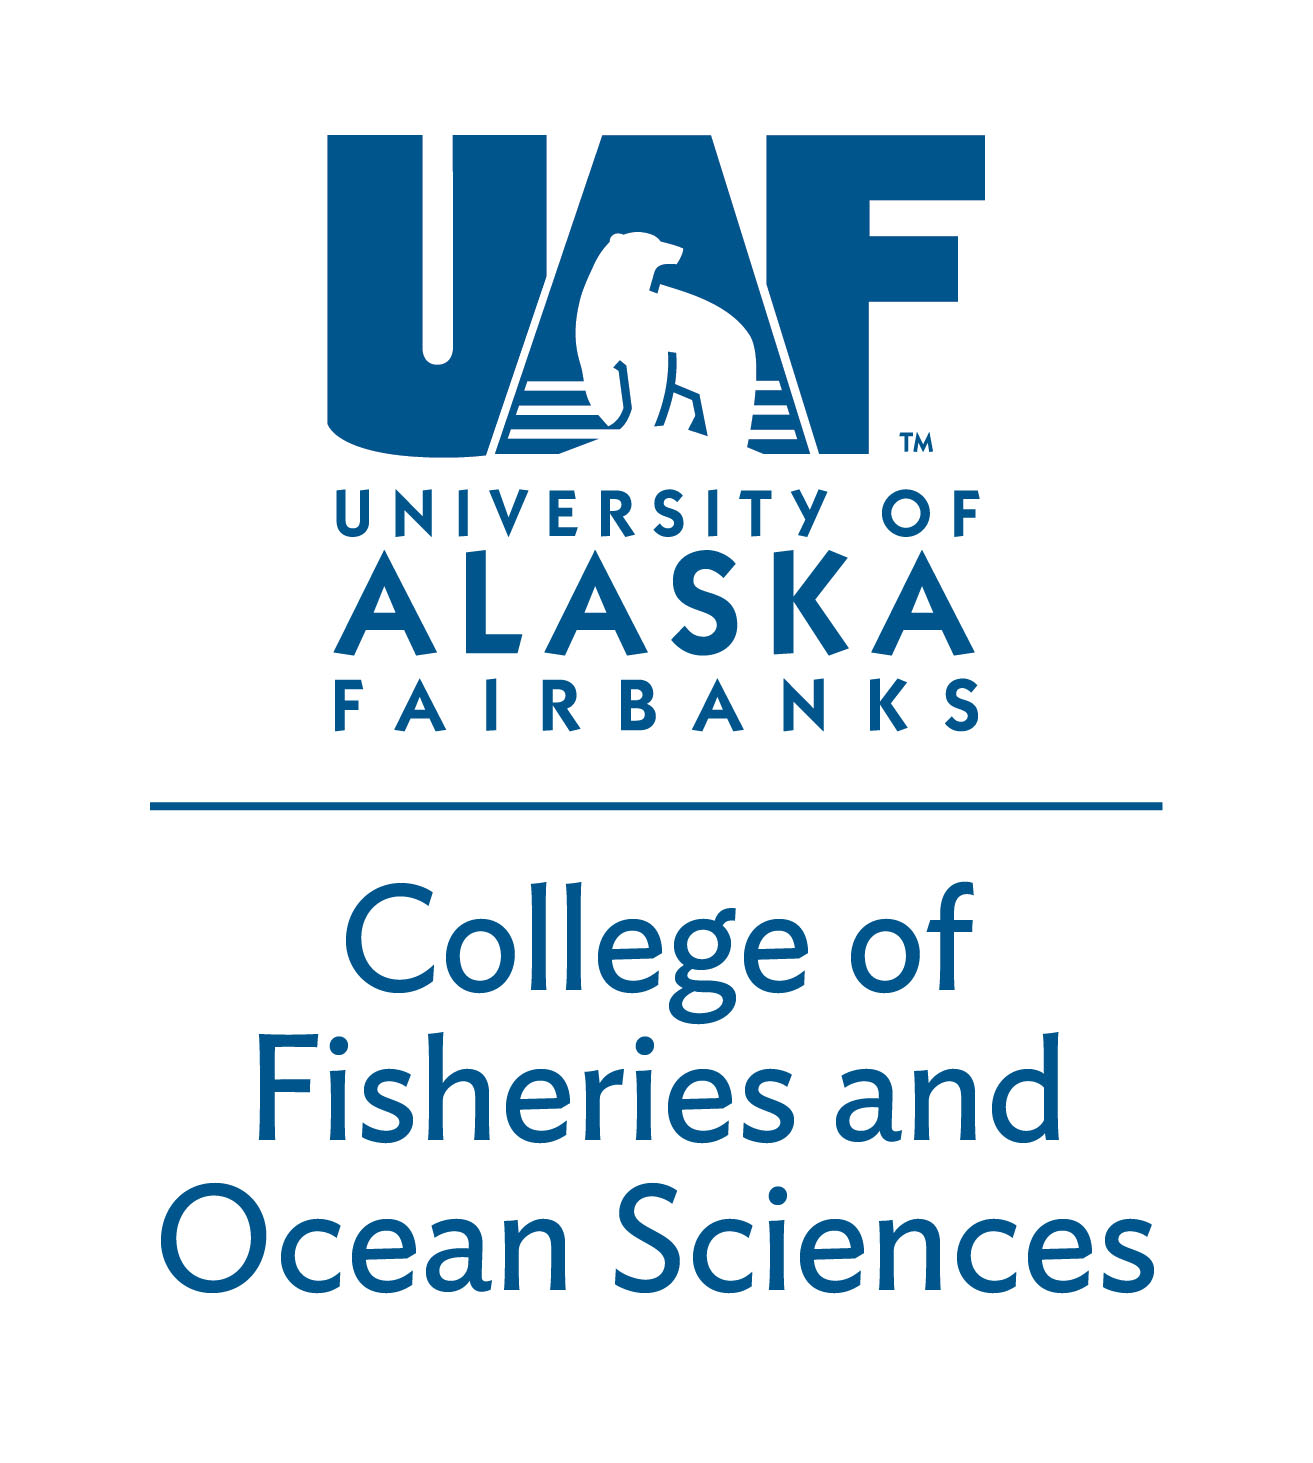 UAF College of Fisheries and Ocean Sciences - Blue logo